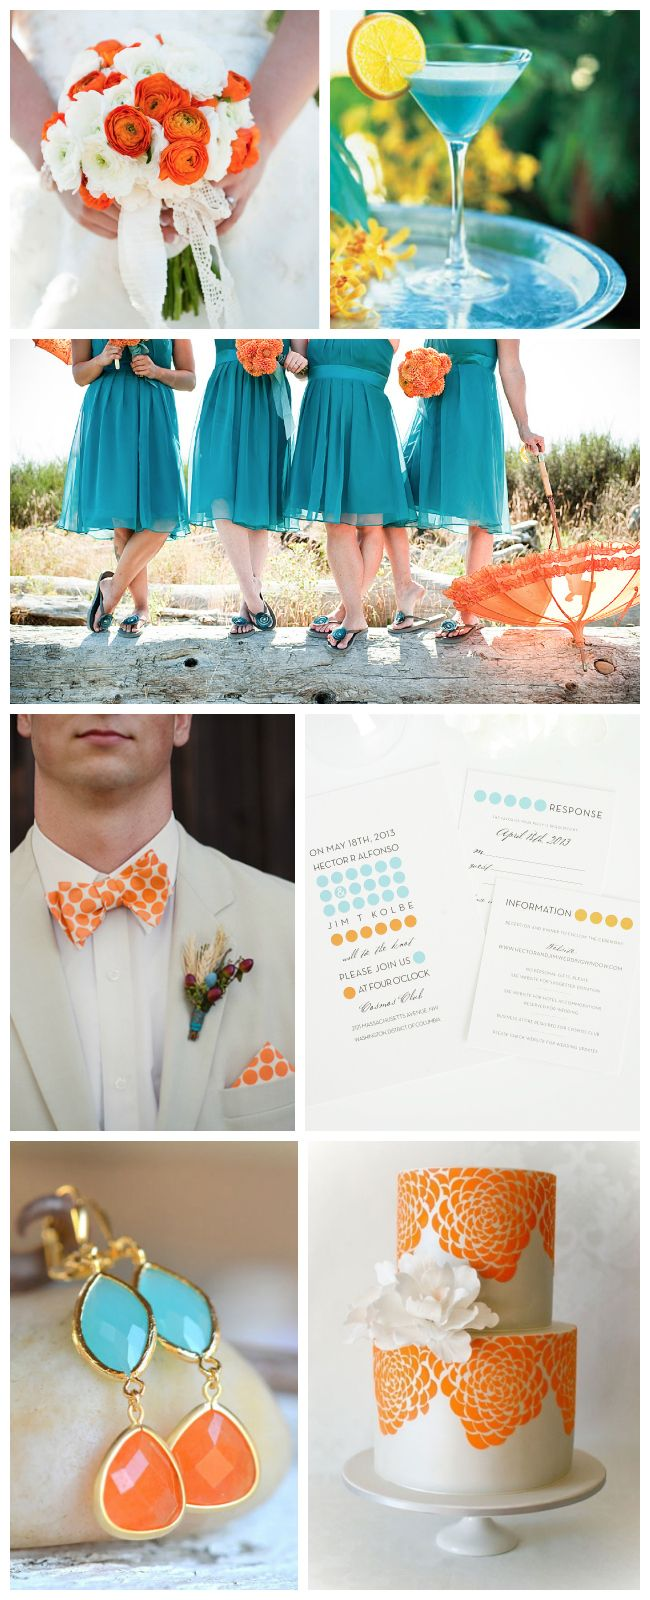 Blue and Orange Wedding Inspiration | Inspiration, Wedding and Wedding